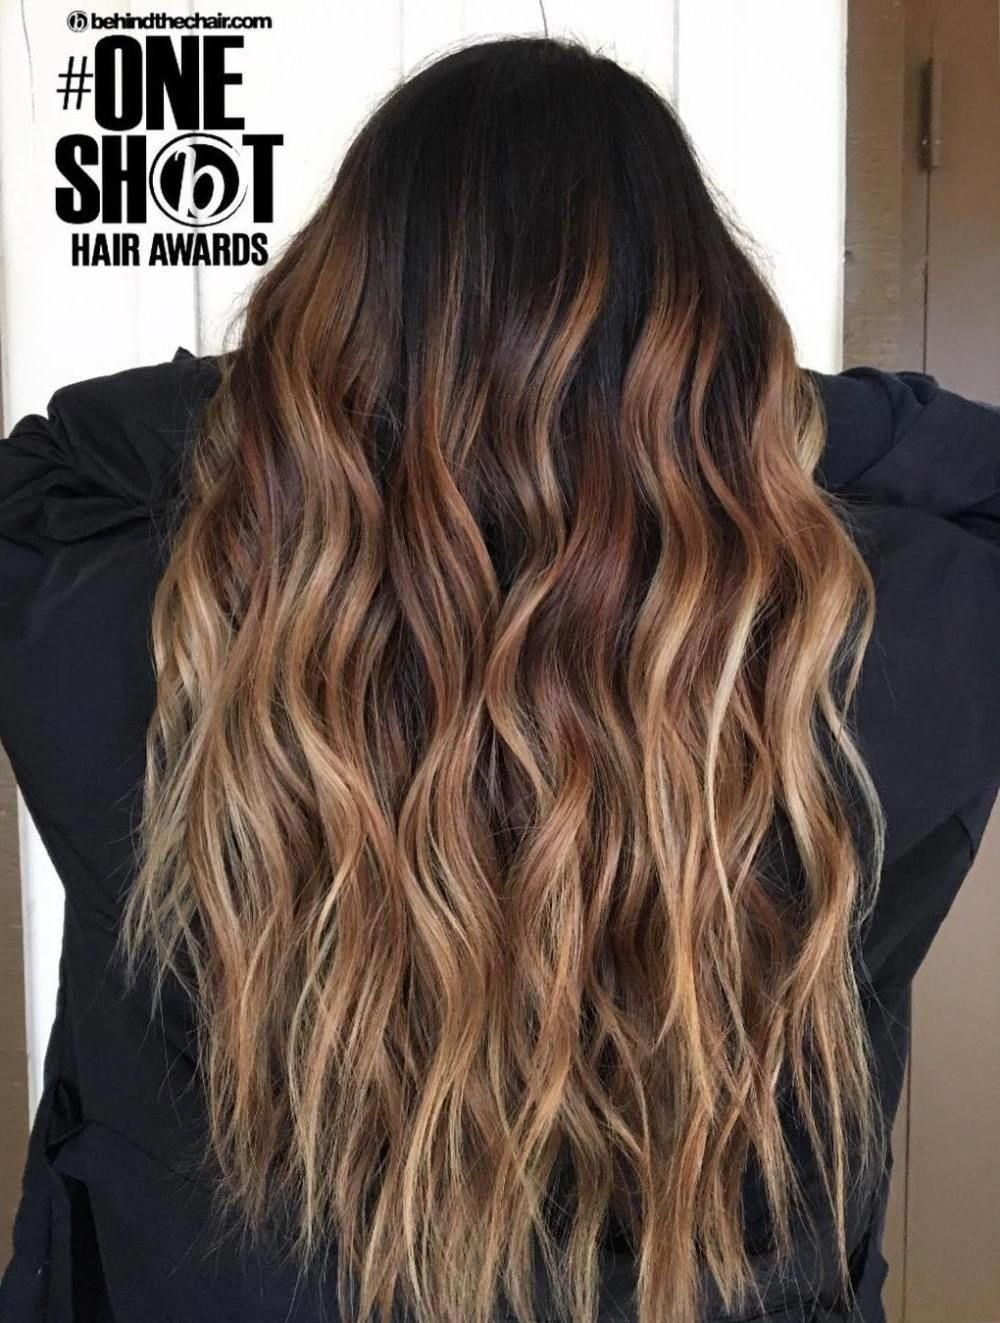 60 Looks With Caramel Highlights On Brown And Dark Brown Hair Hair Color Caramel Caramel Blonde Hair Black Hair Ombre